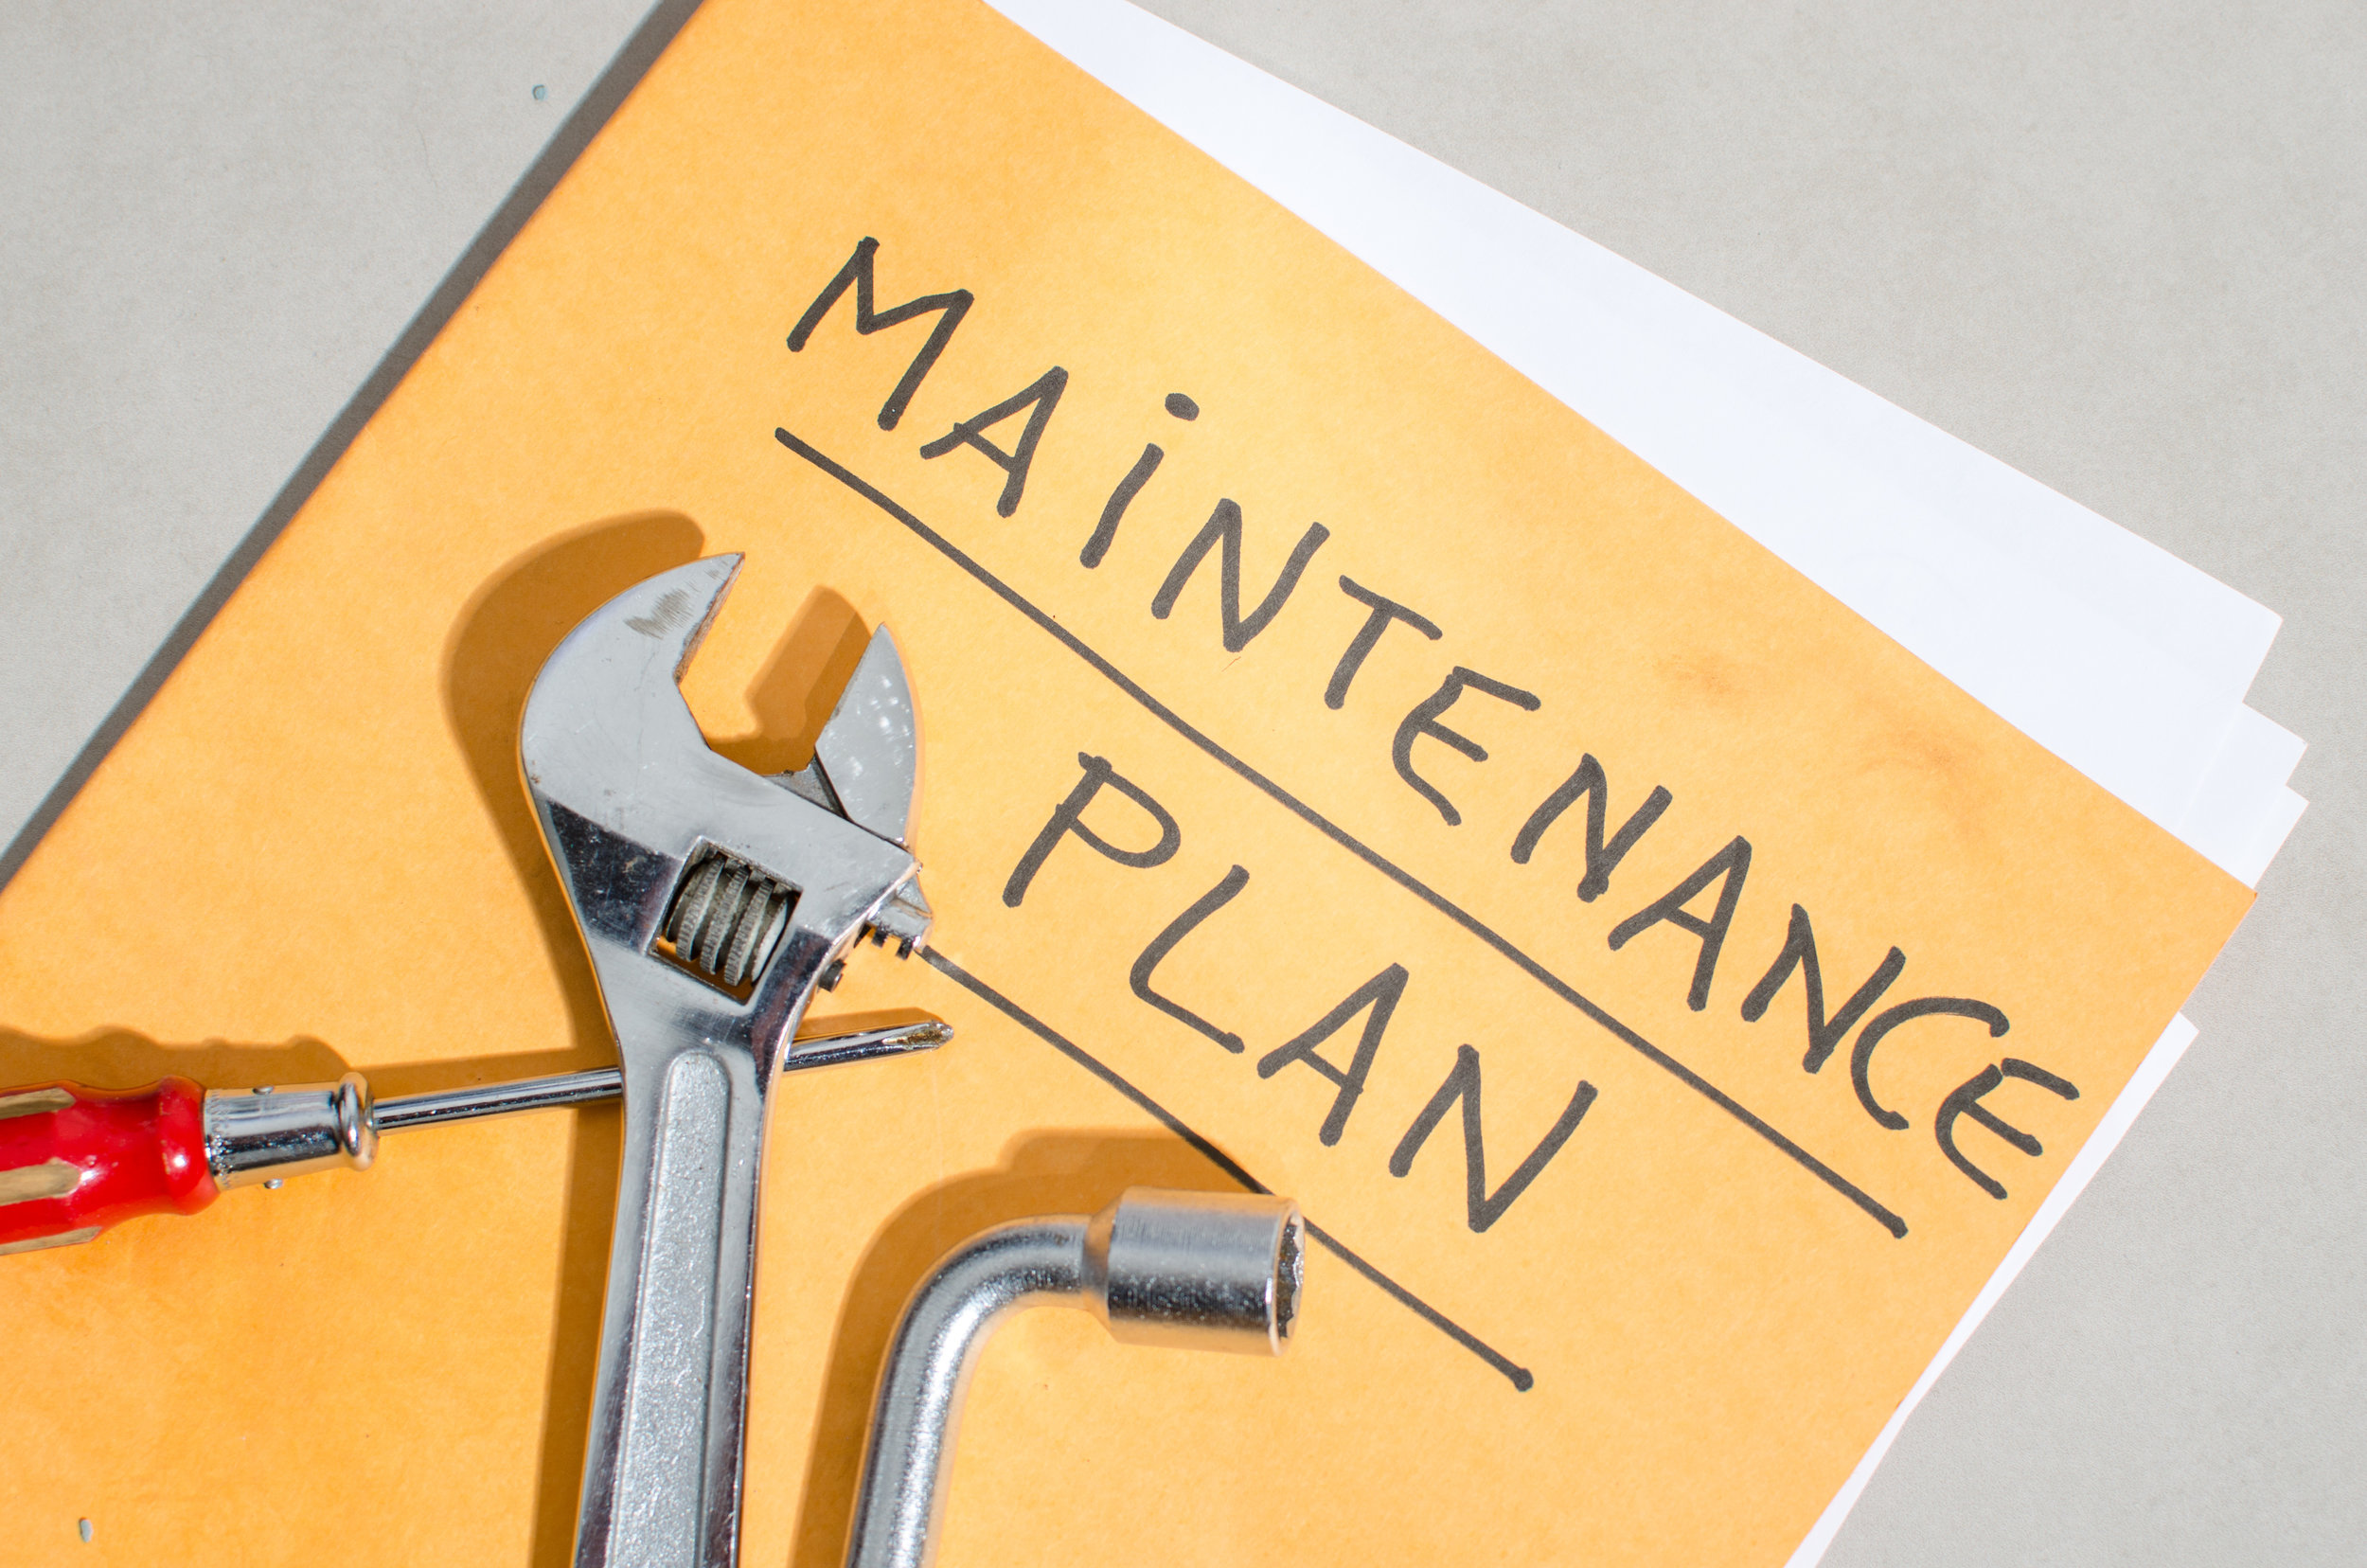 - Our Heating and Air Conditioning maintenance plans ensure that your HVAC system gets the proper care that it requires.